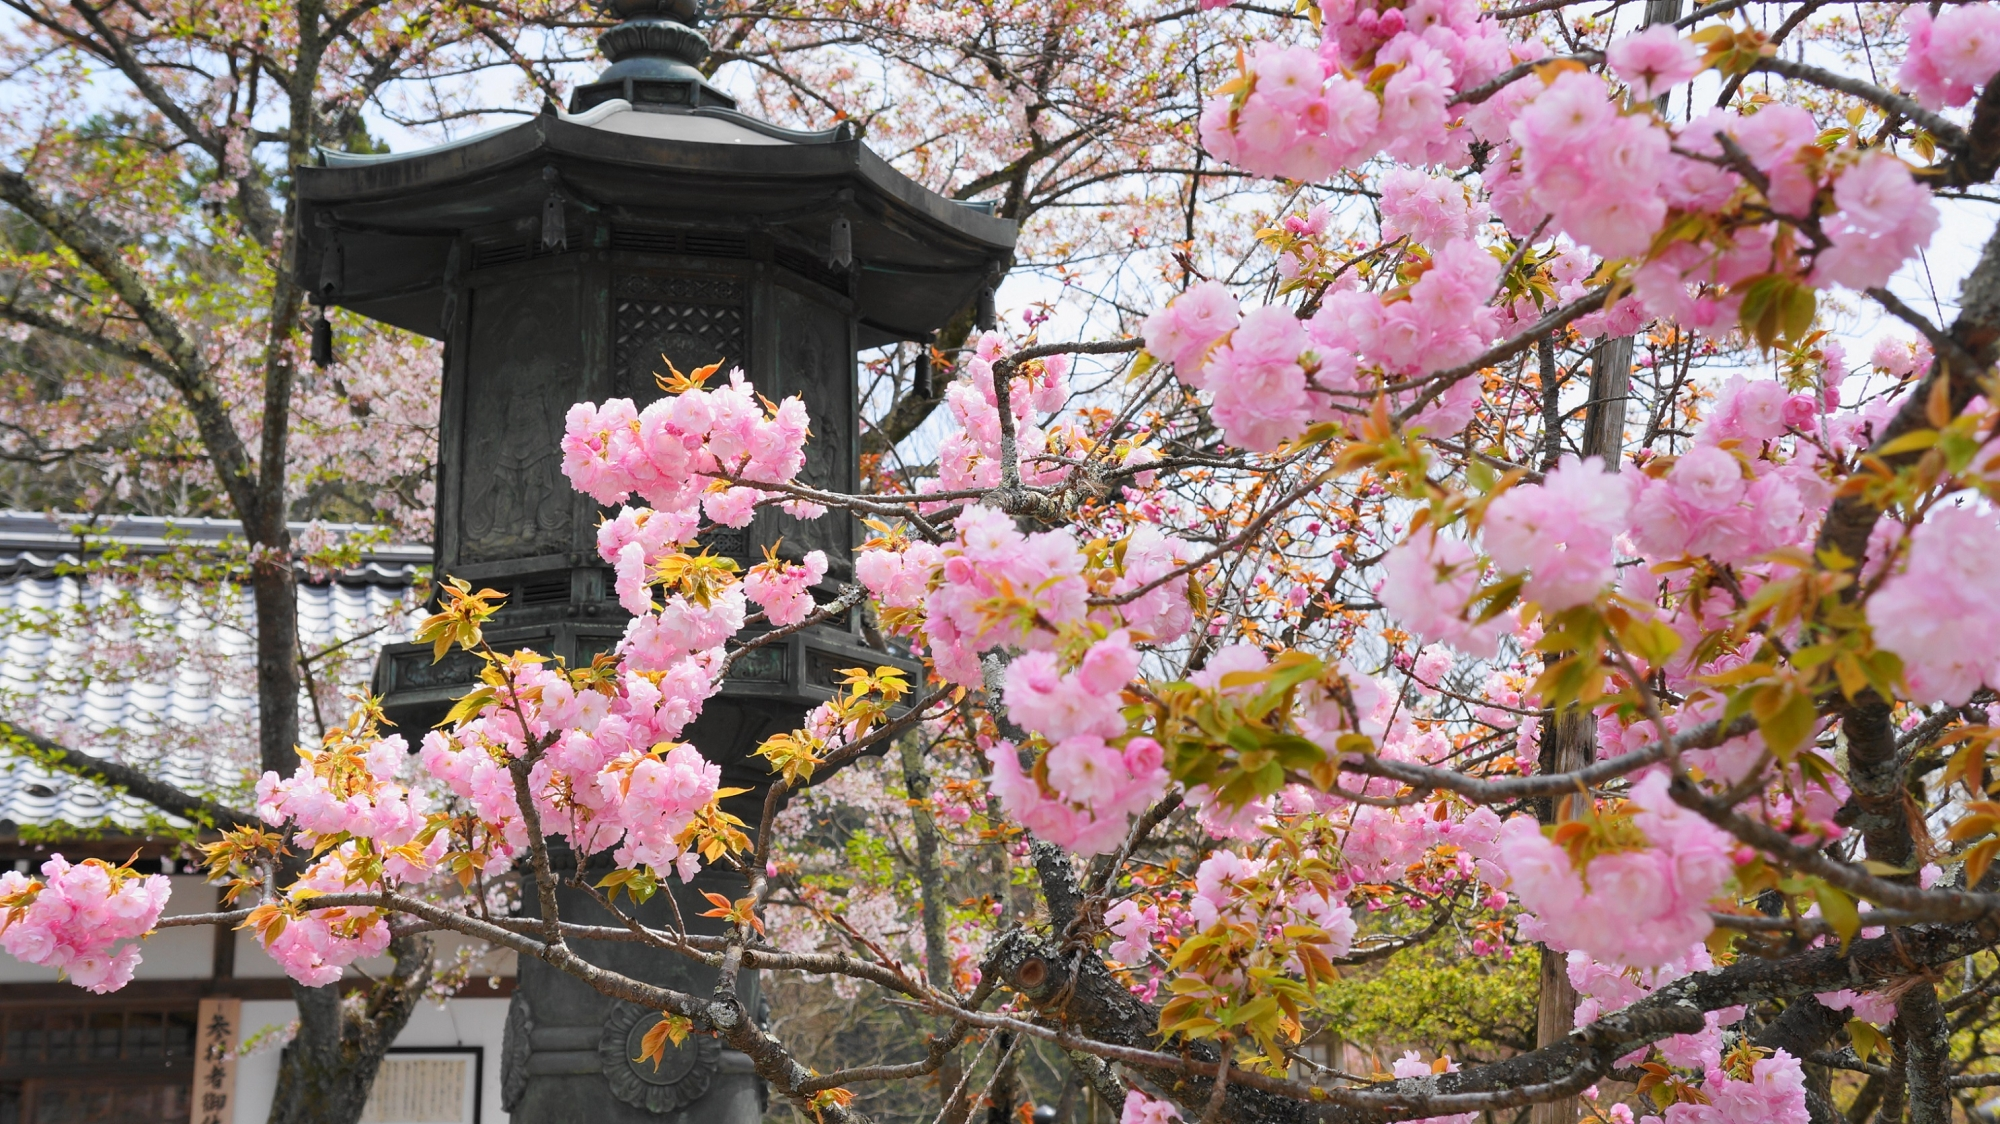 cherry blossoms Kurama-dera Temple Kyoto 満開 春 鞍馬寺 桜 金堂